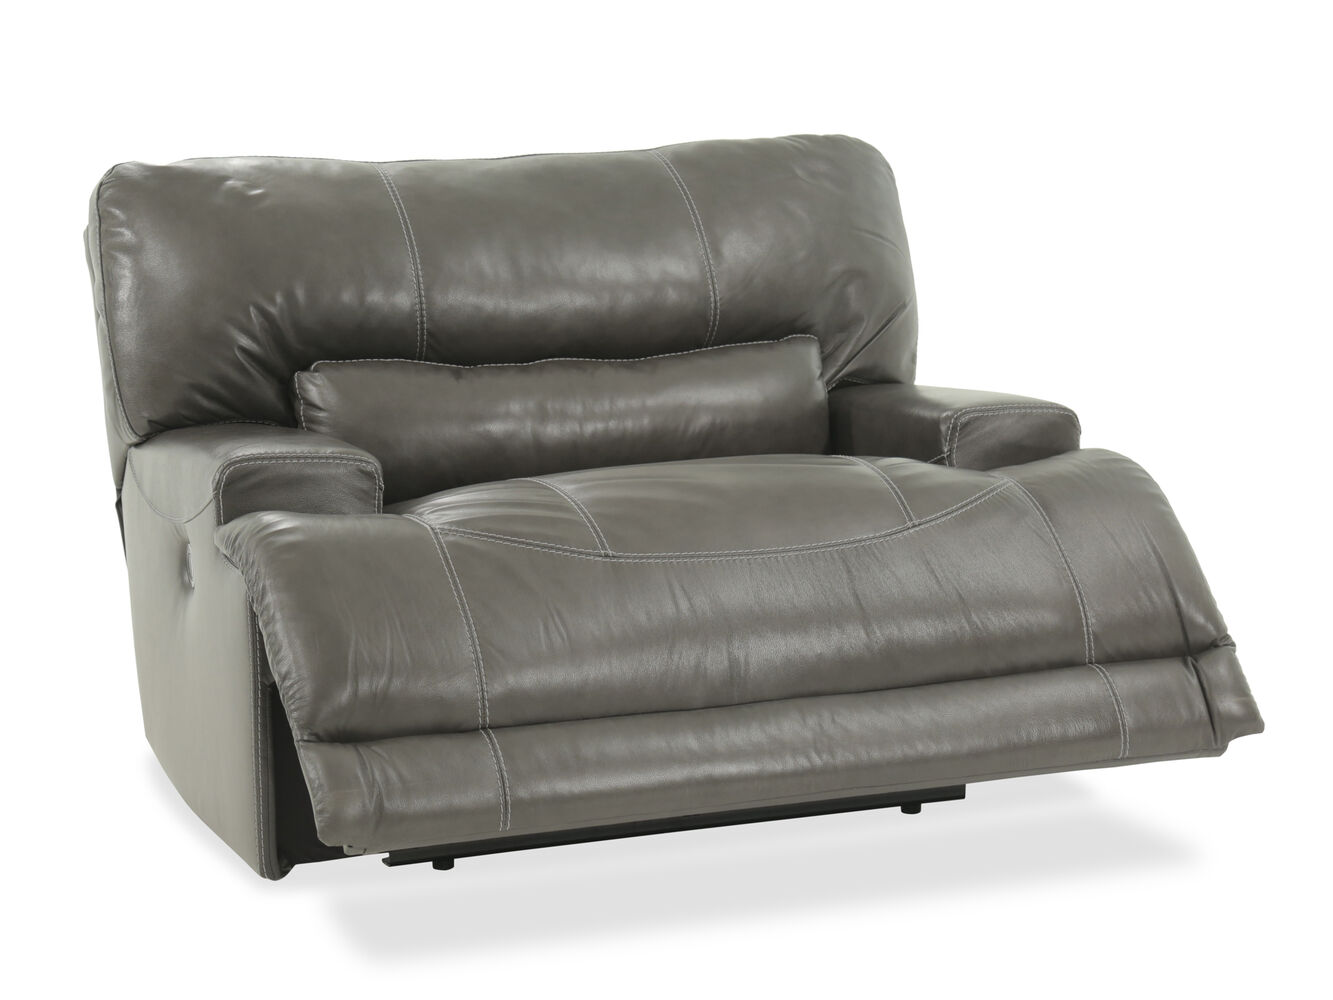 Oversized Power Recliner In Gray Mathis Brothers Furniture